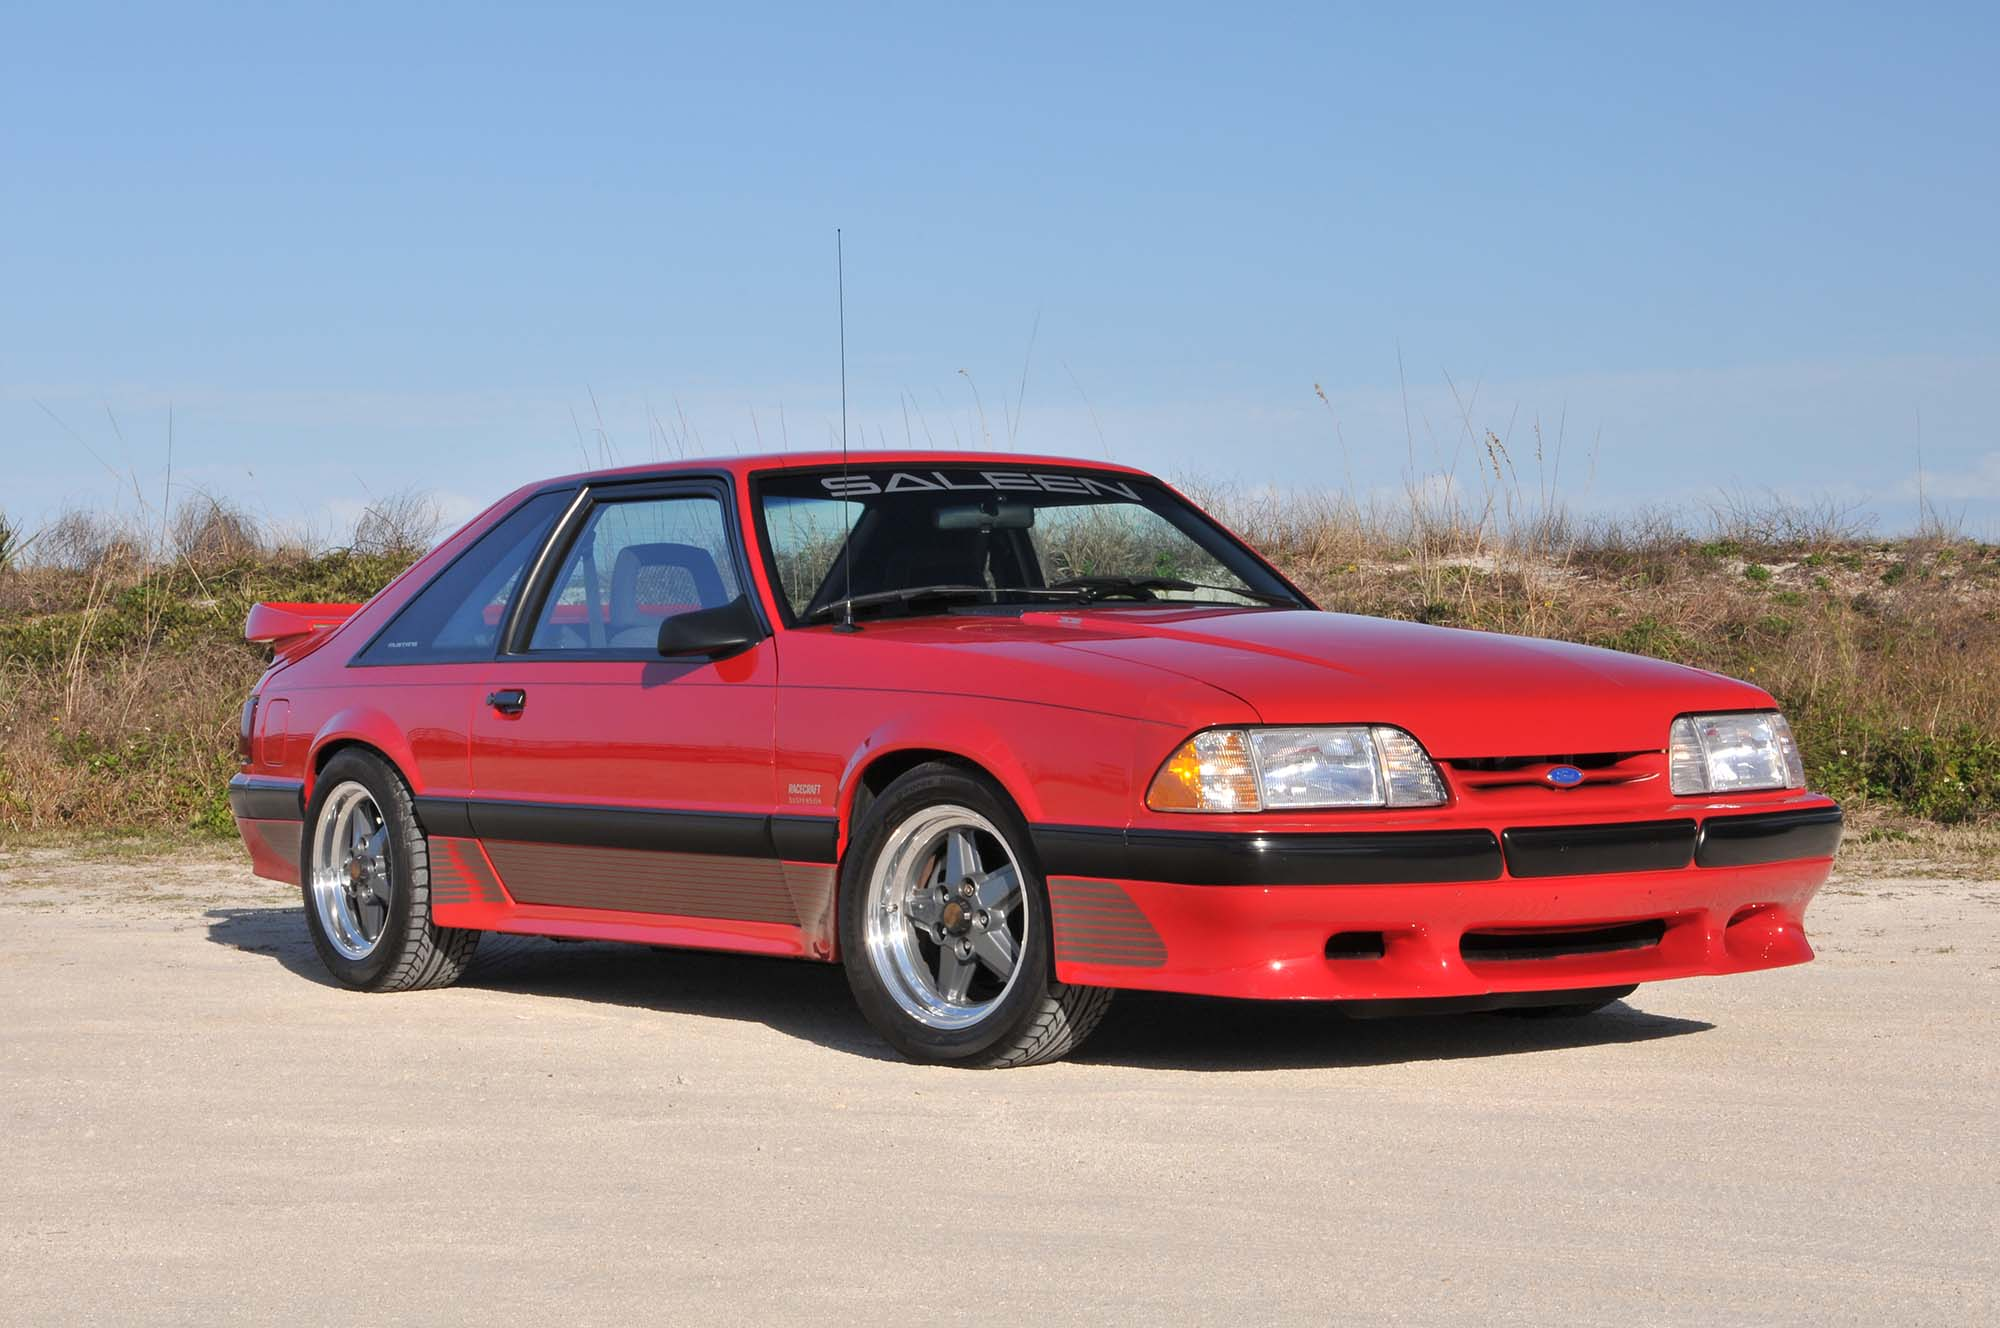 Bright Red 1990 Mustang front